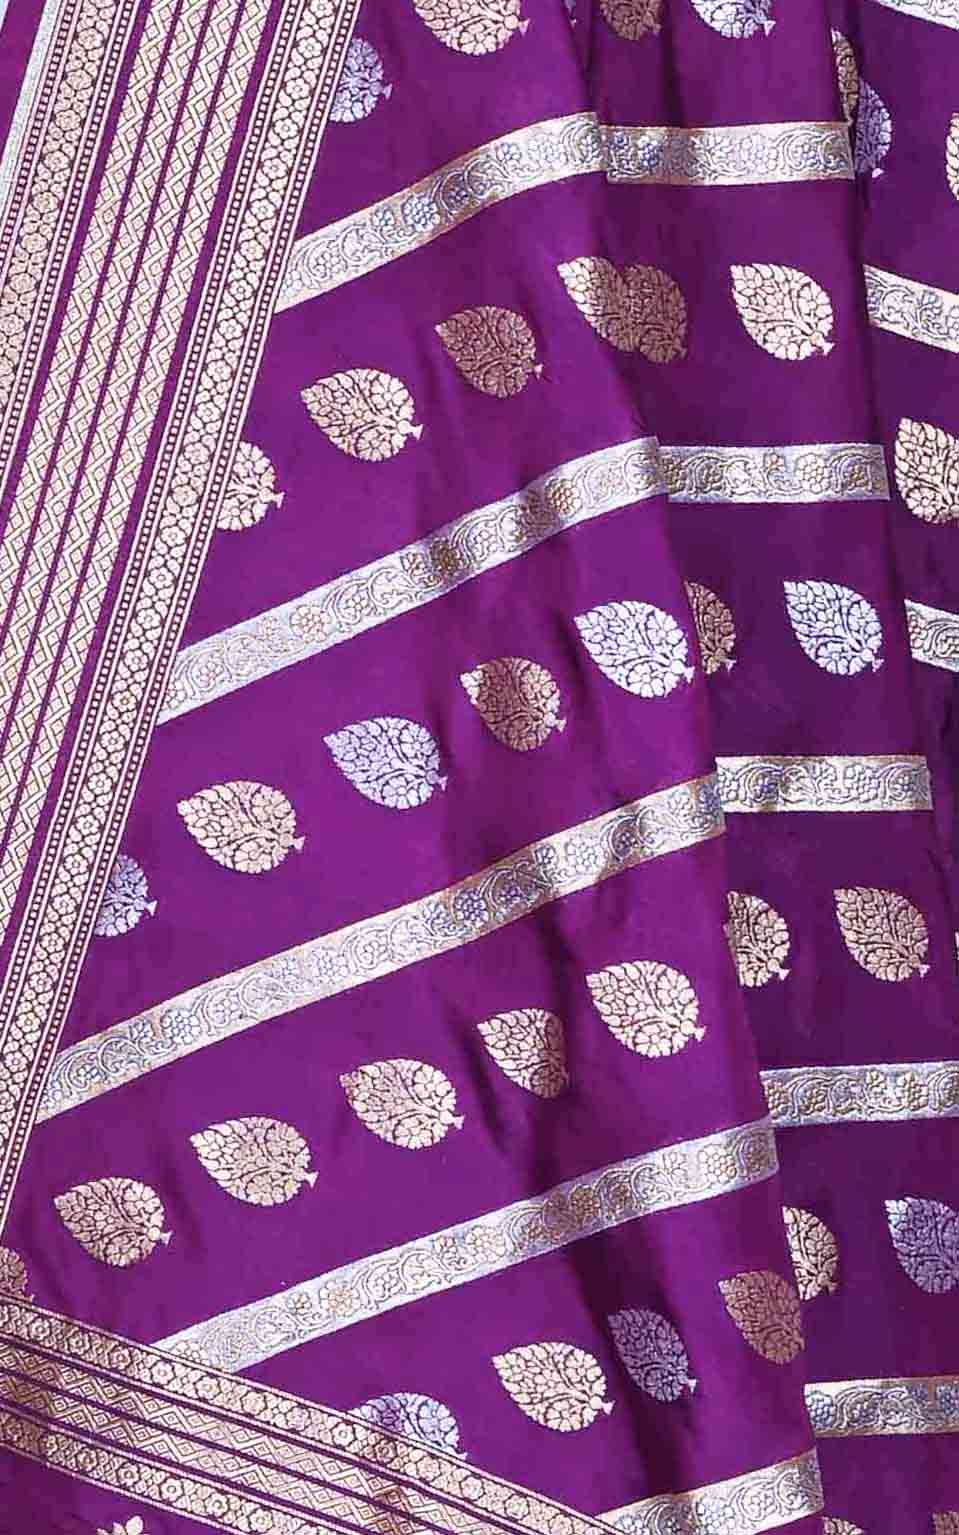 Purple katan silk Banarasi dupatta with diagonal leaf boota (2) Close up